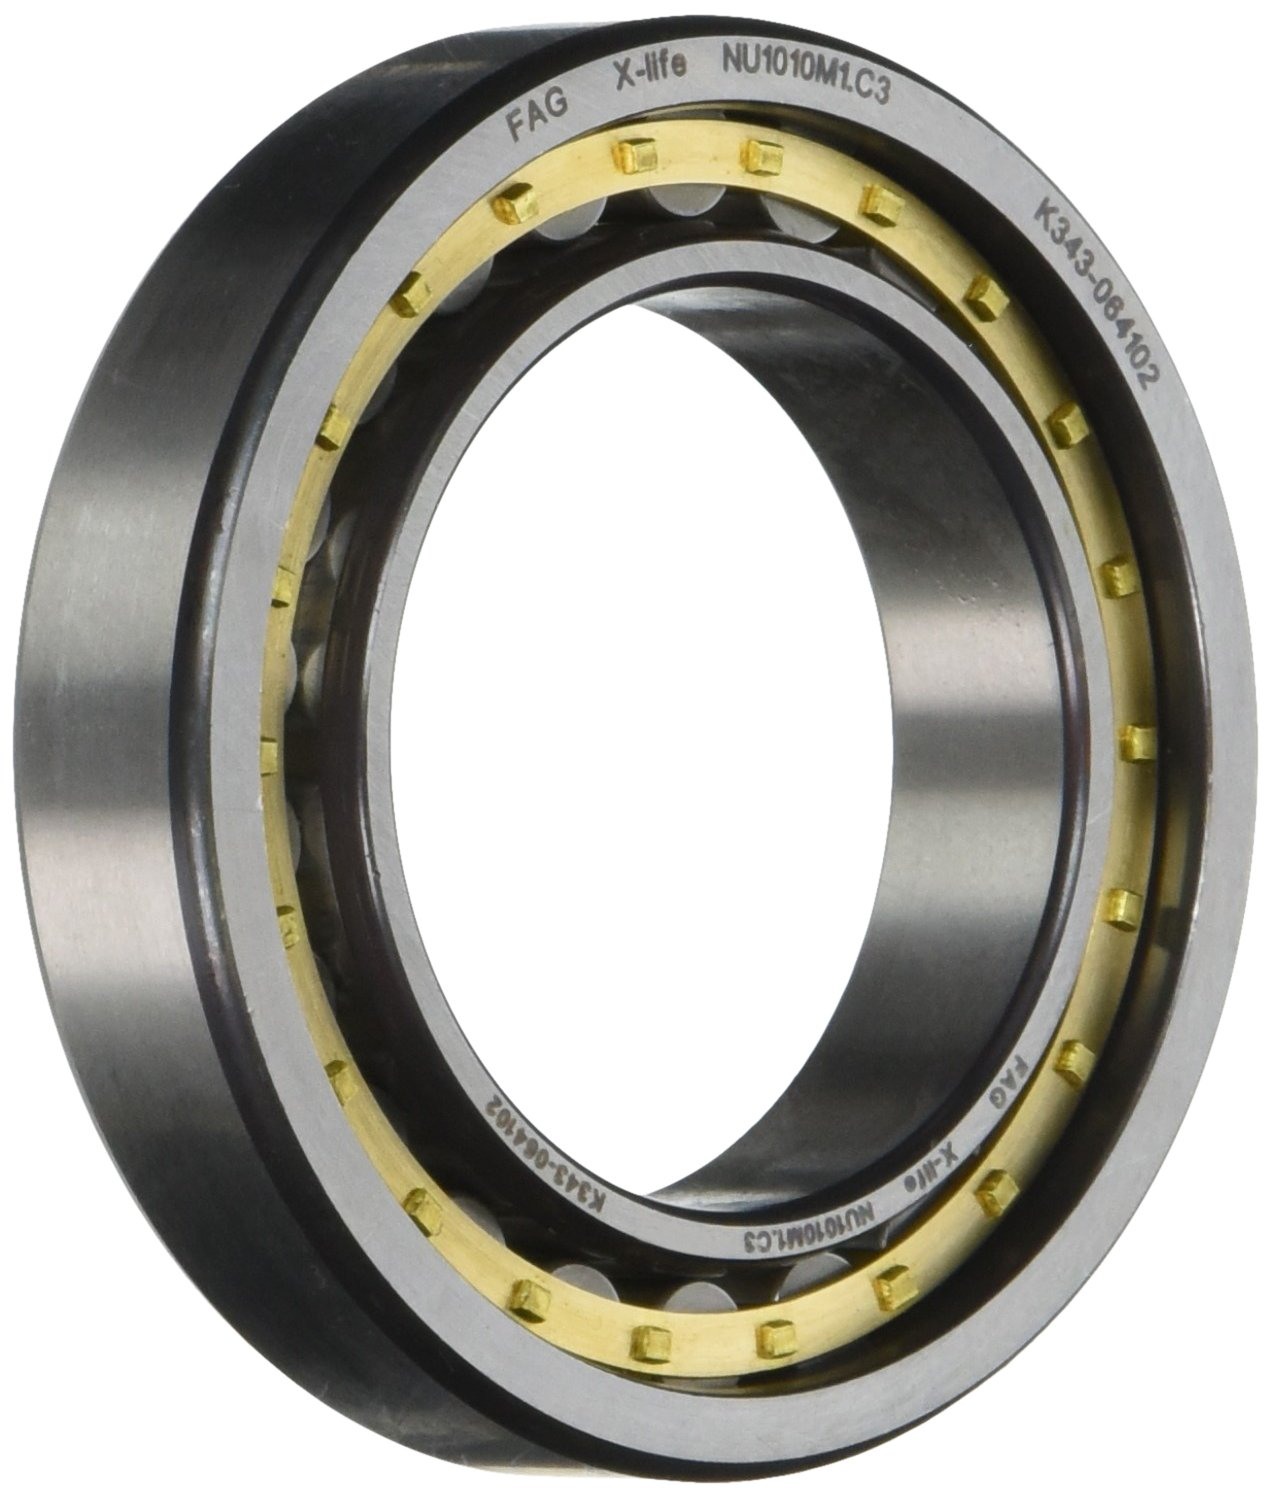 80mm OD Removable Inner Ring 16mm Width FAG NU1010M1-C3 Cylindrical Roller Bearing Straight Bore 50mm ID C3 Clearance Standard Capacity Brass Cage Single Row